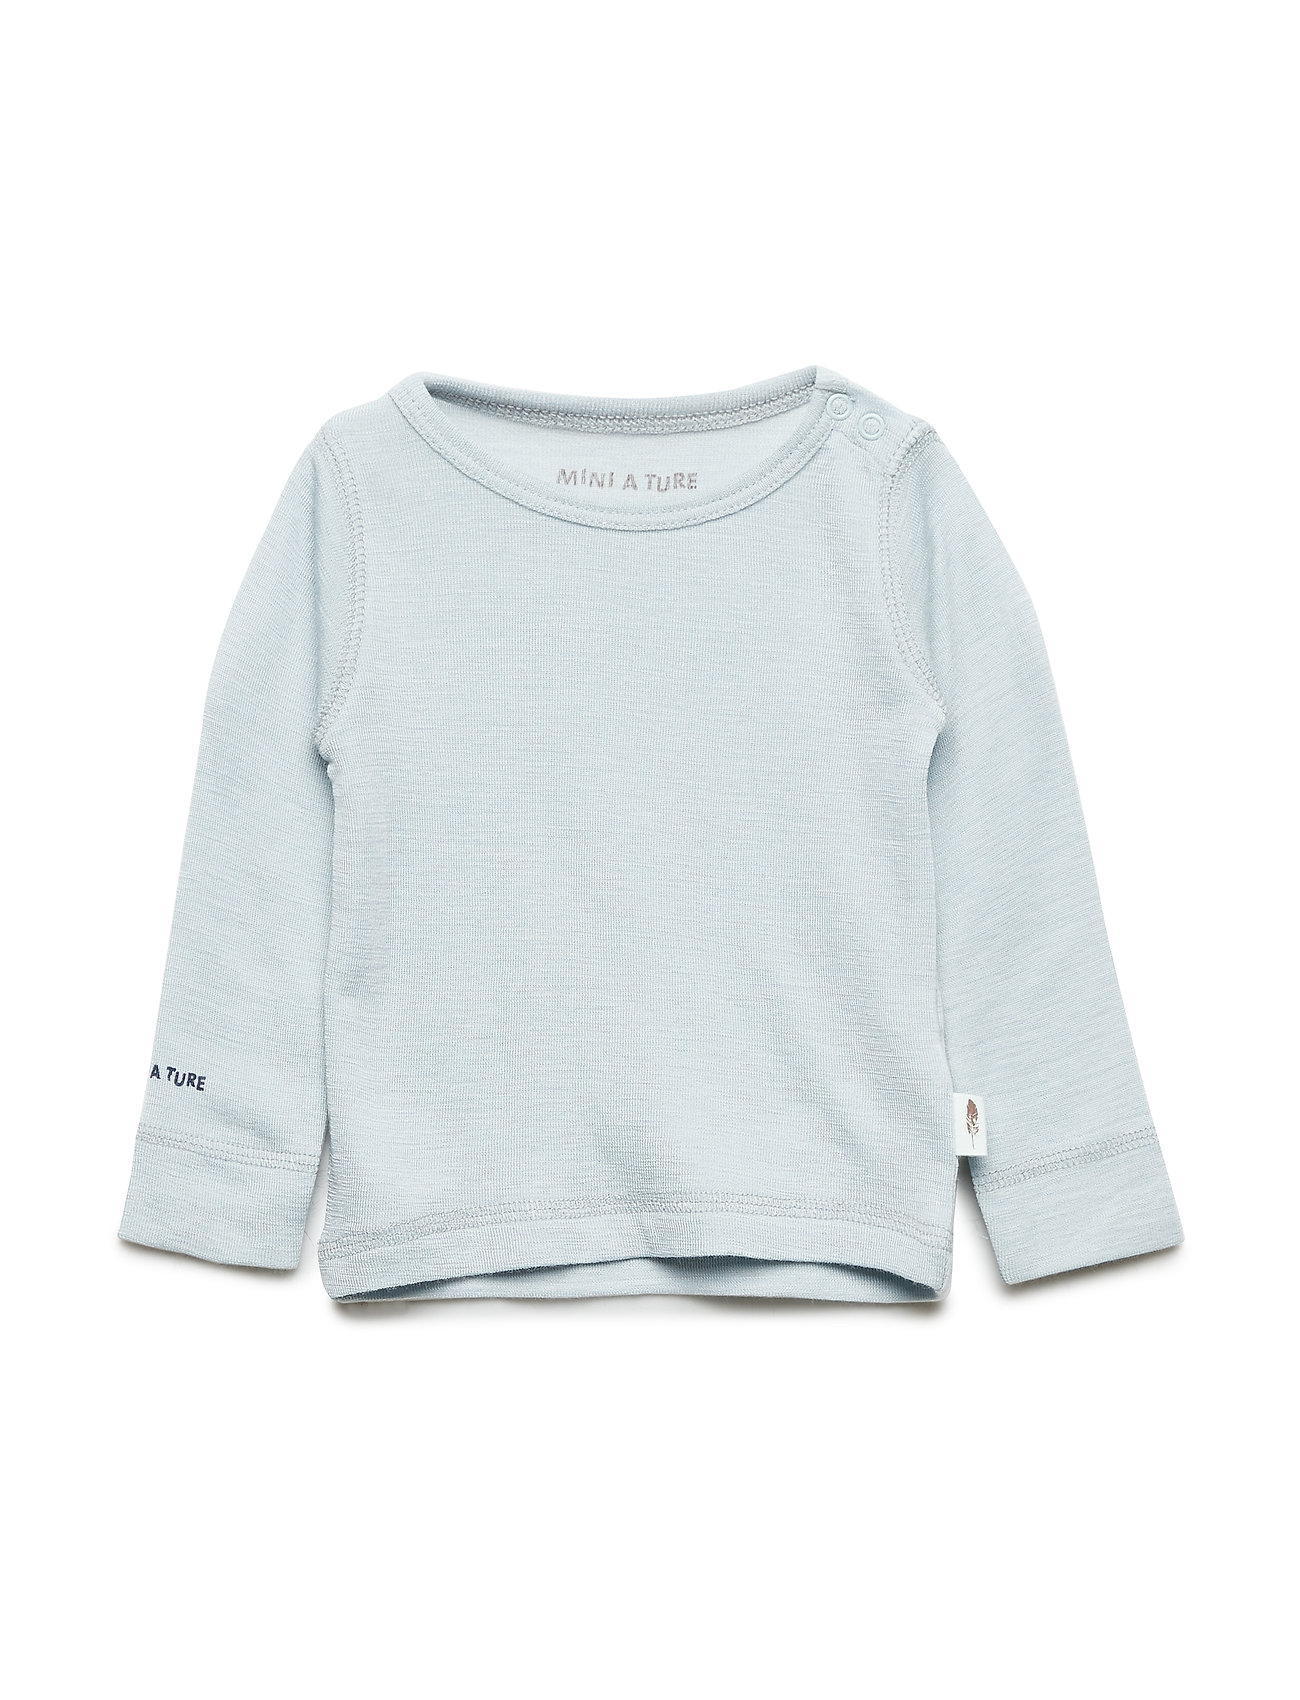 Mini A Ture Erion T-shirt, MK - BABY BLUE